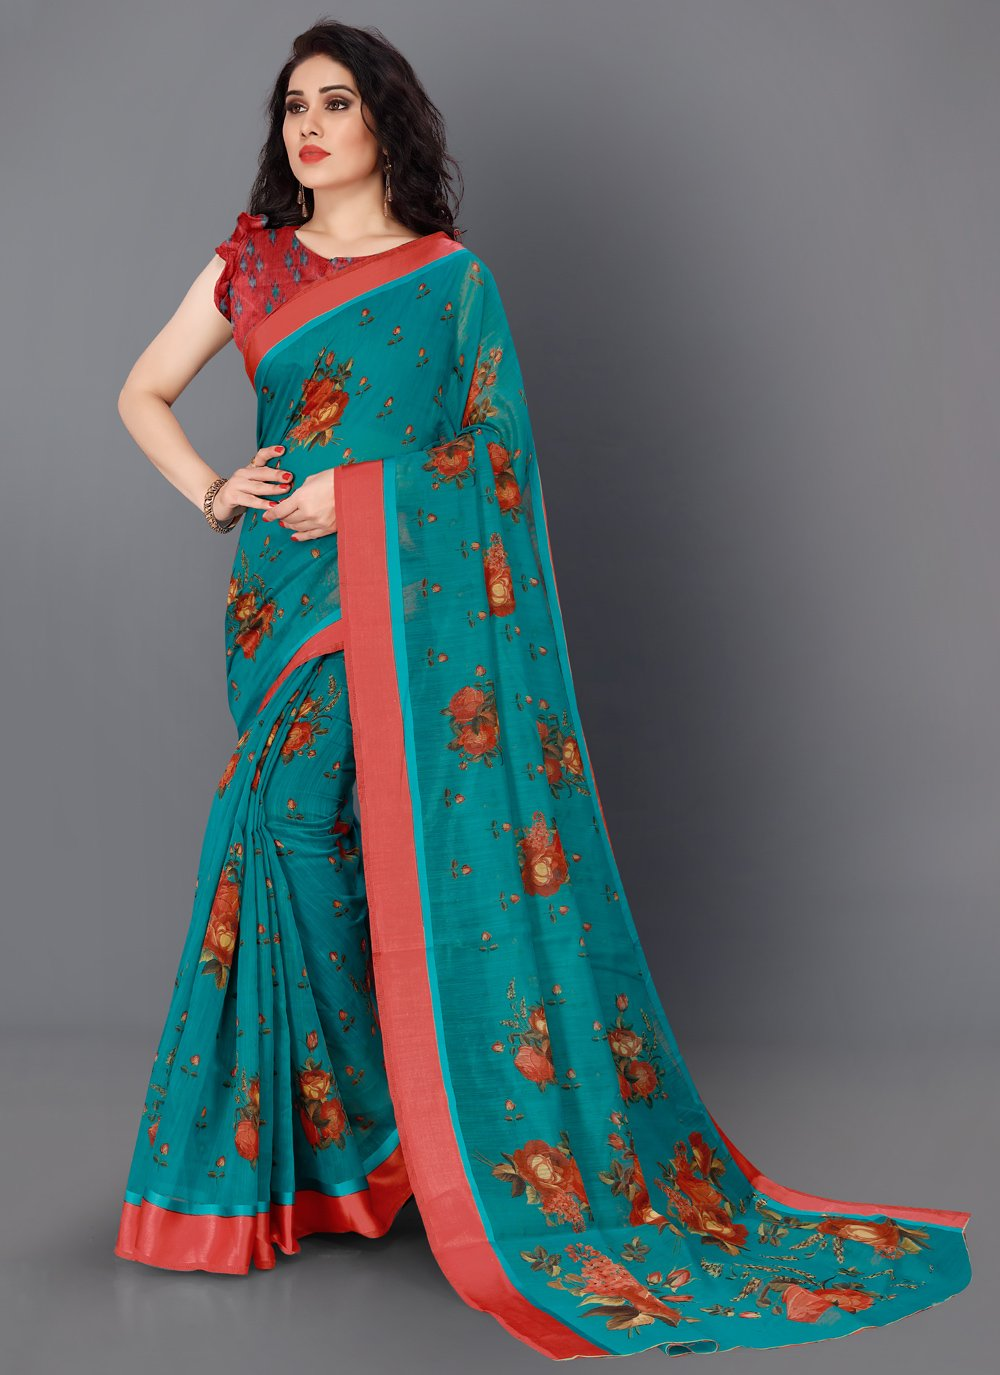 Floral Print Contemporary Saree